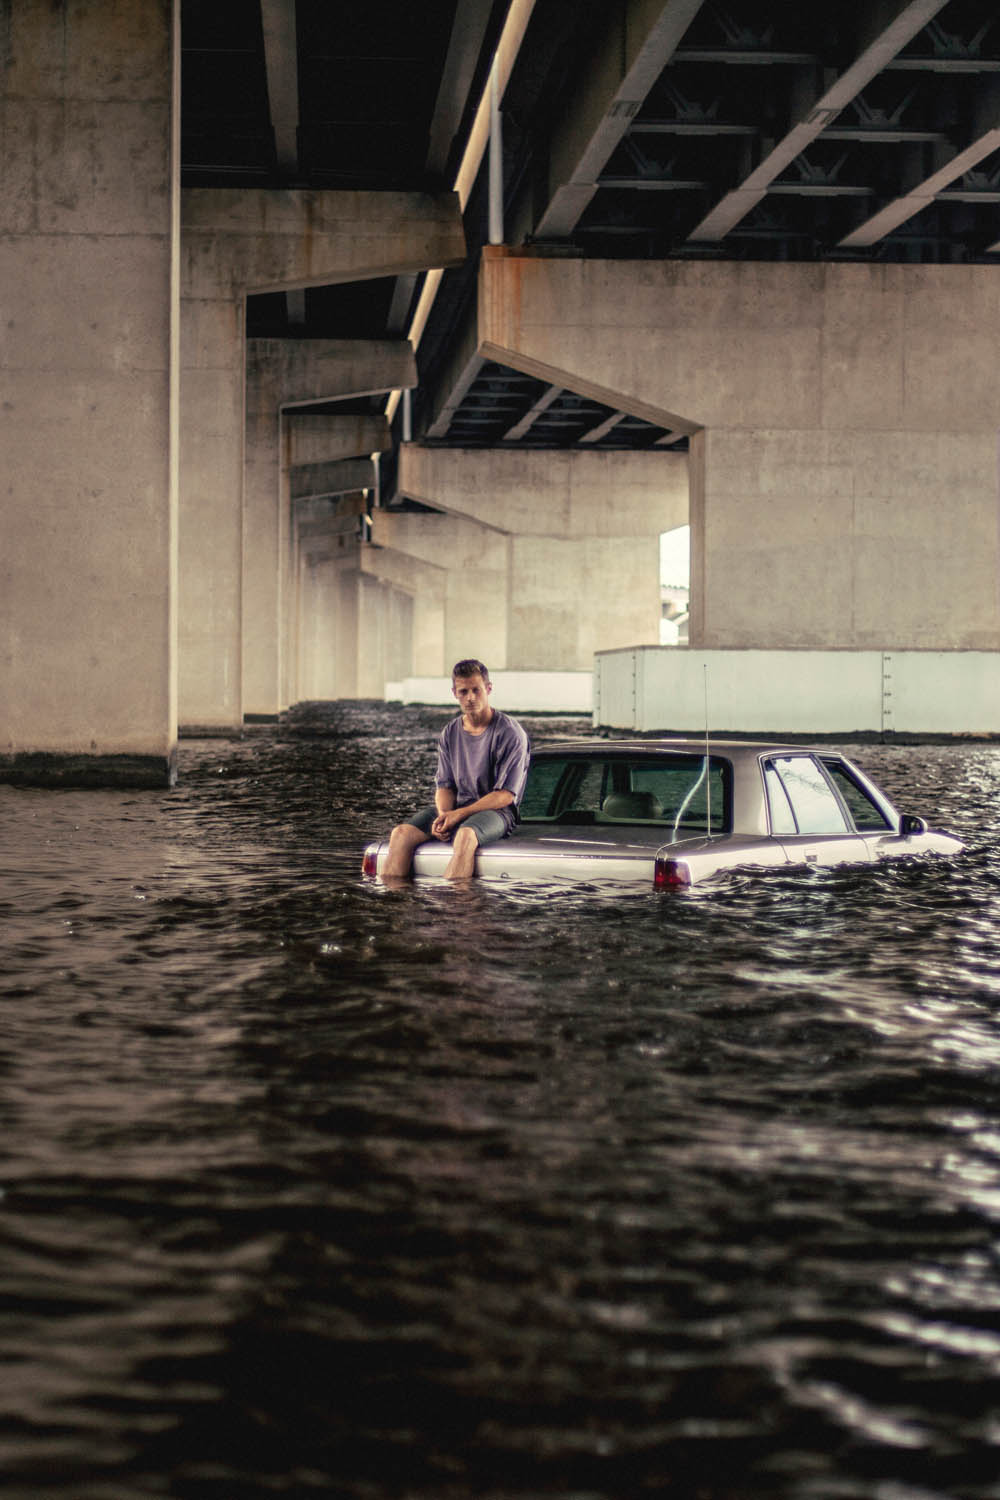 young man sitting on the trunk of a car submerged in a river